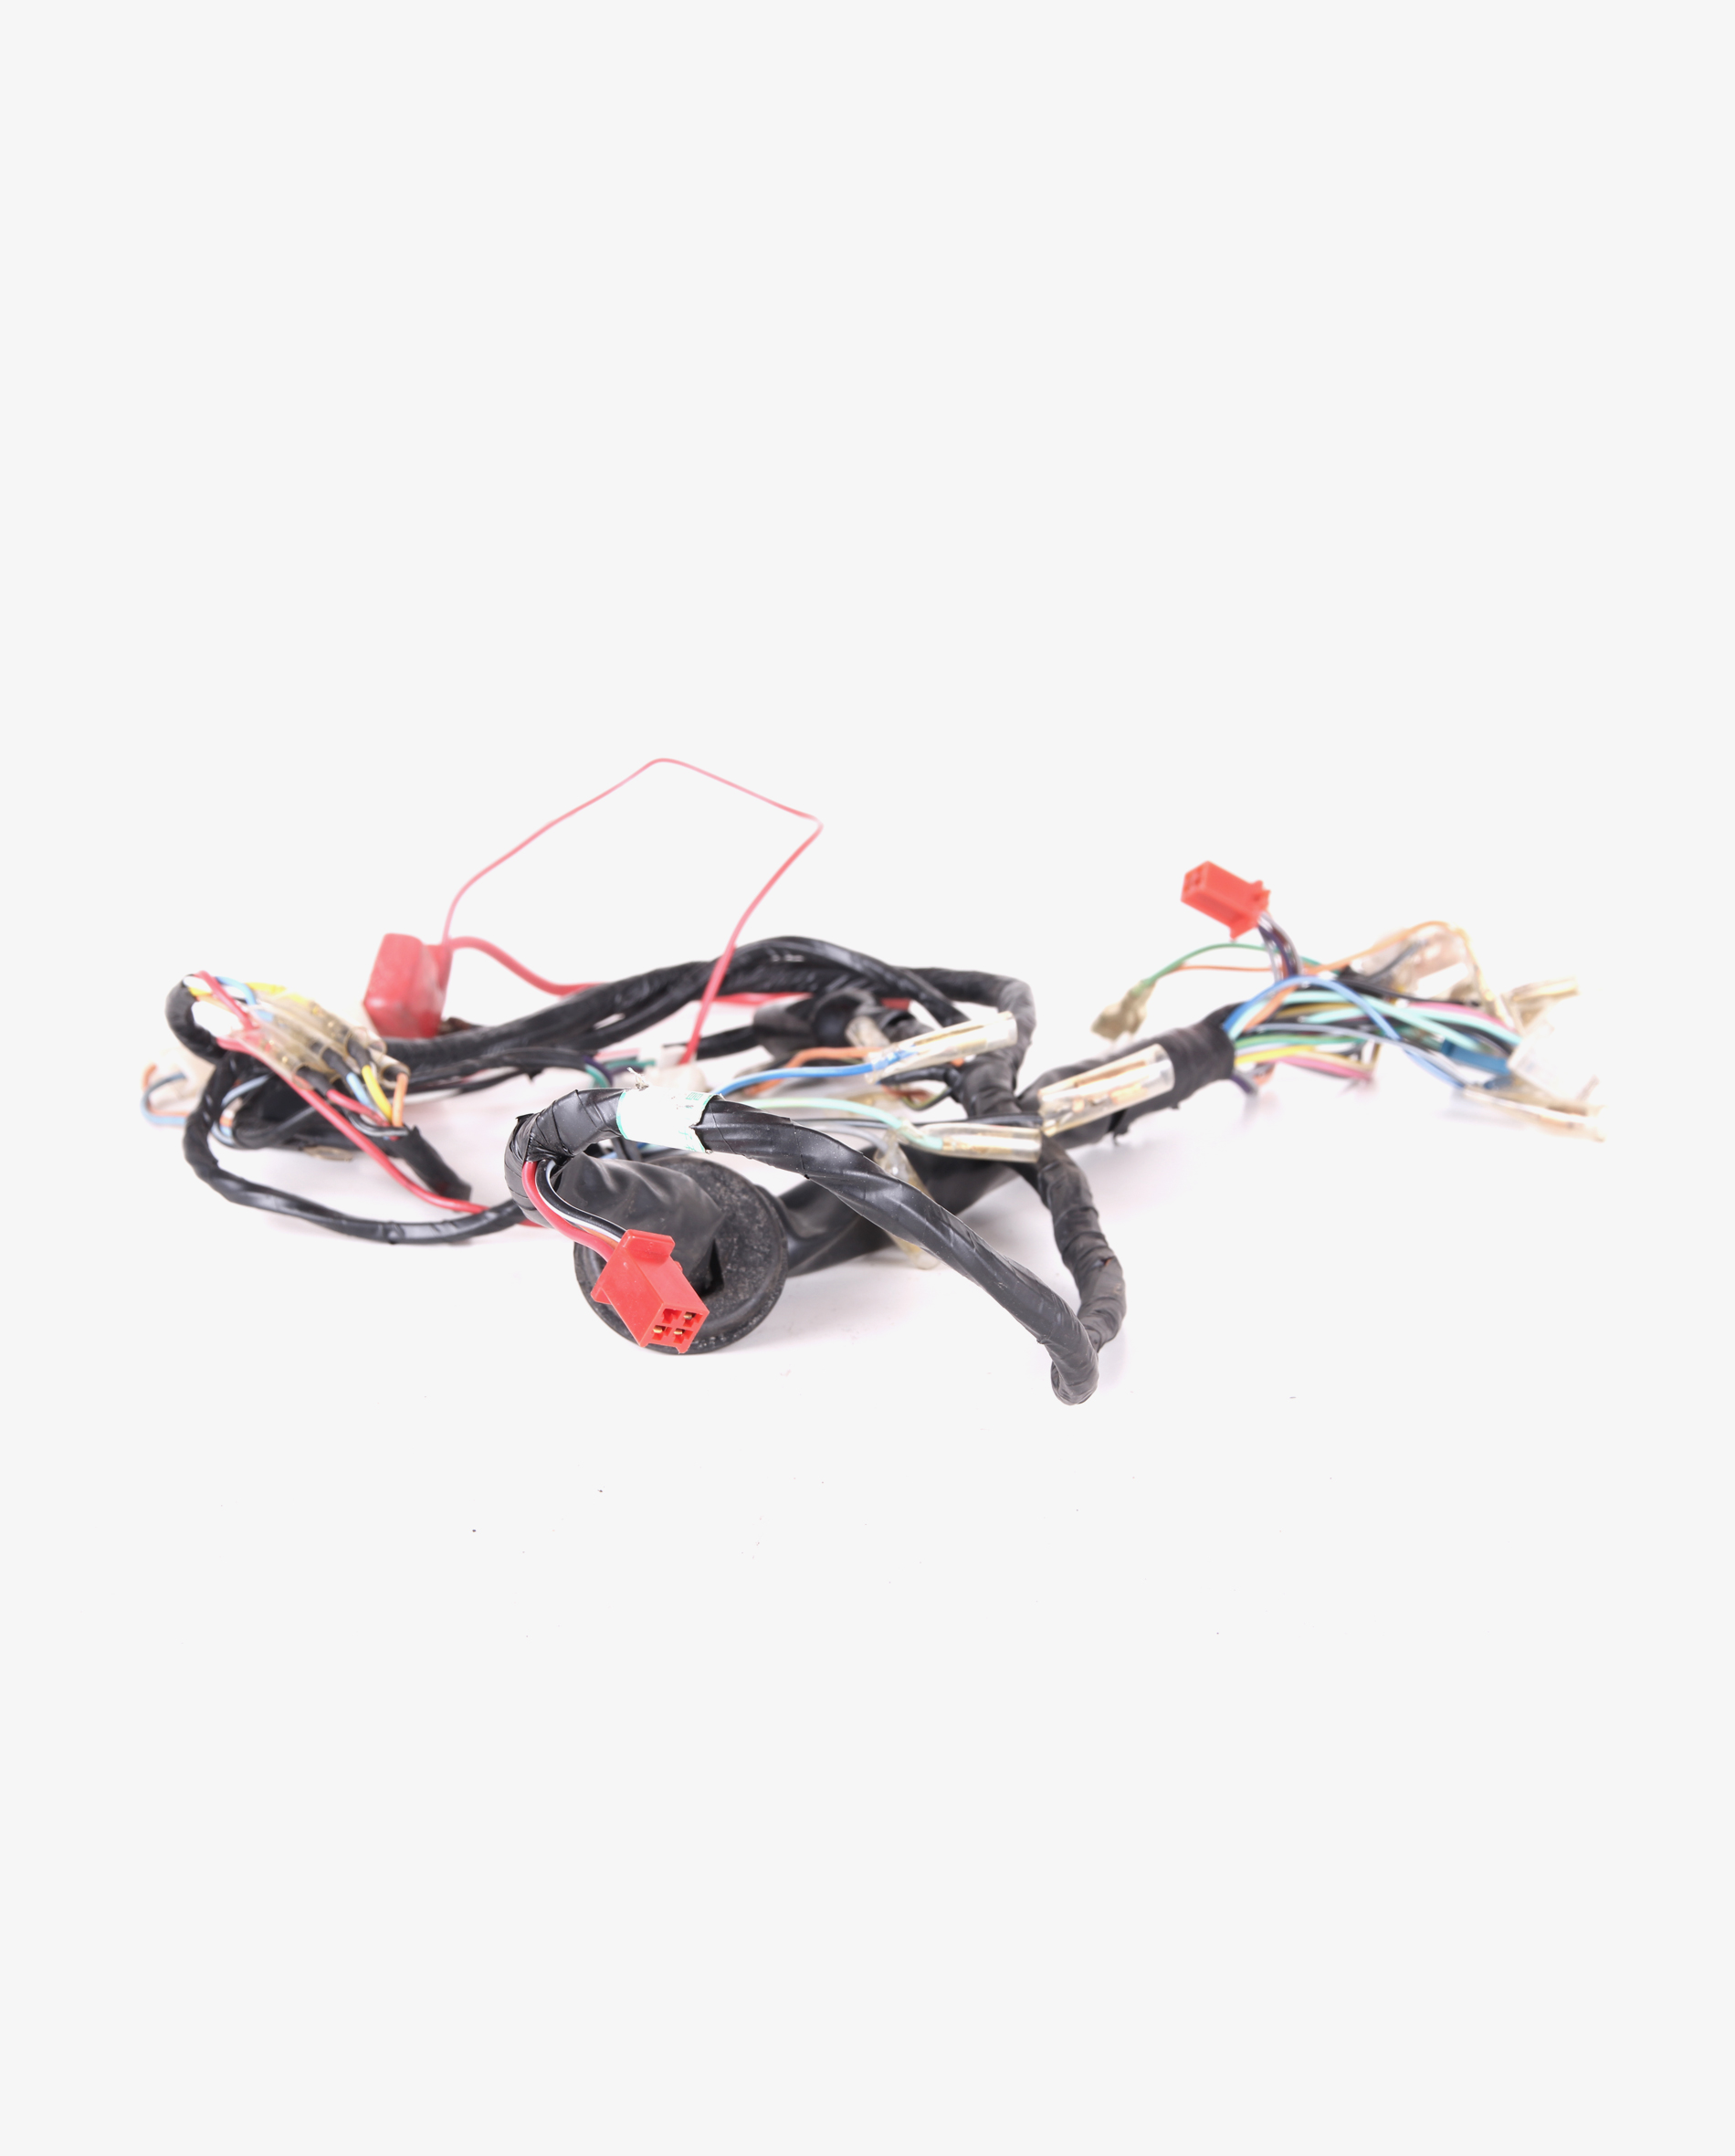 Wiring loom Honda Monkey and Dax (No. 250) · Fourstrokebarn